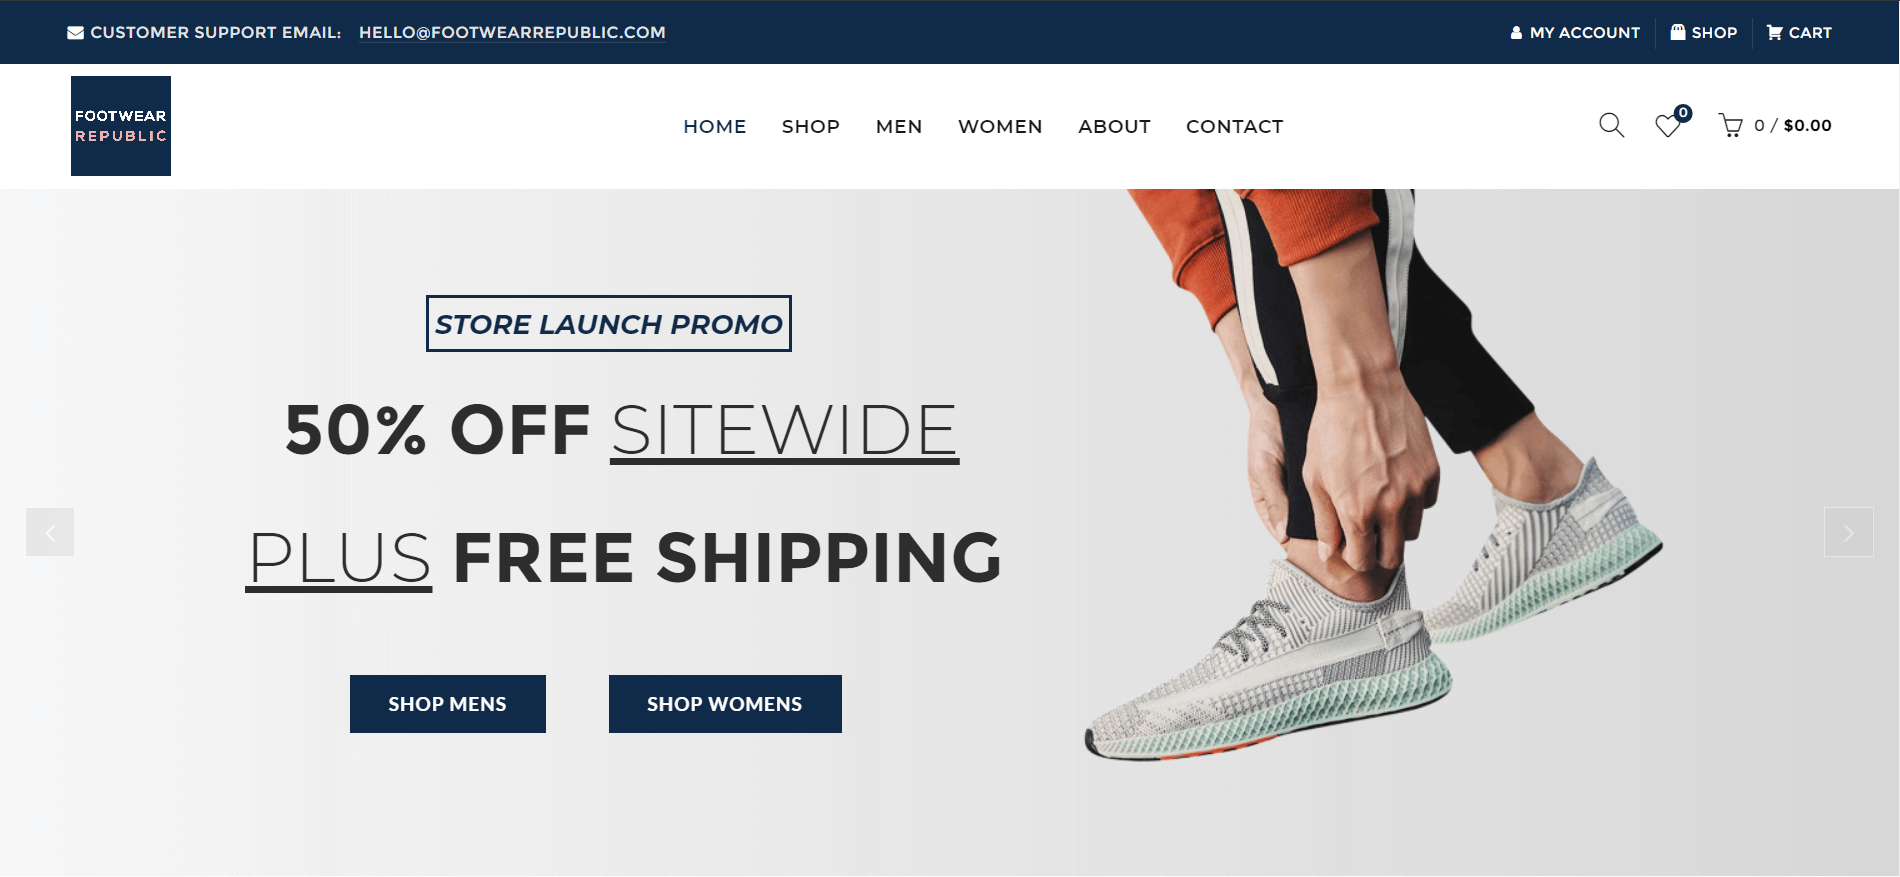 footwear republic splash page